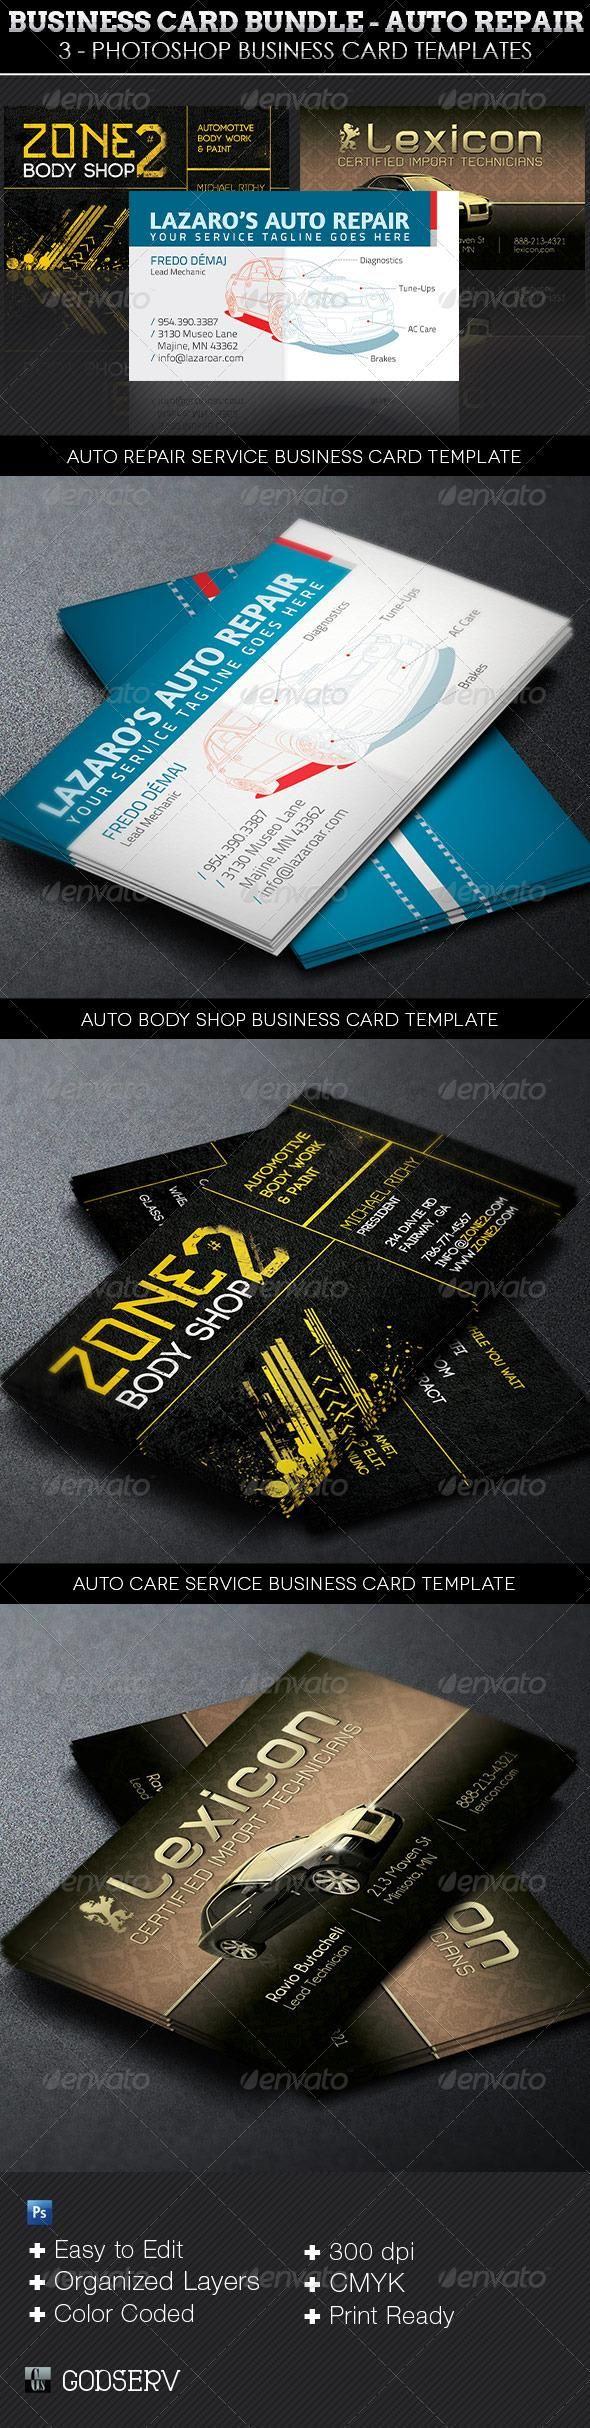 18 best Body Shop Business Cards images on Pinterest | Business ...